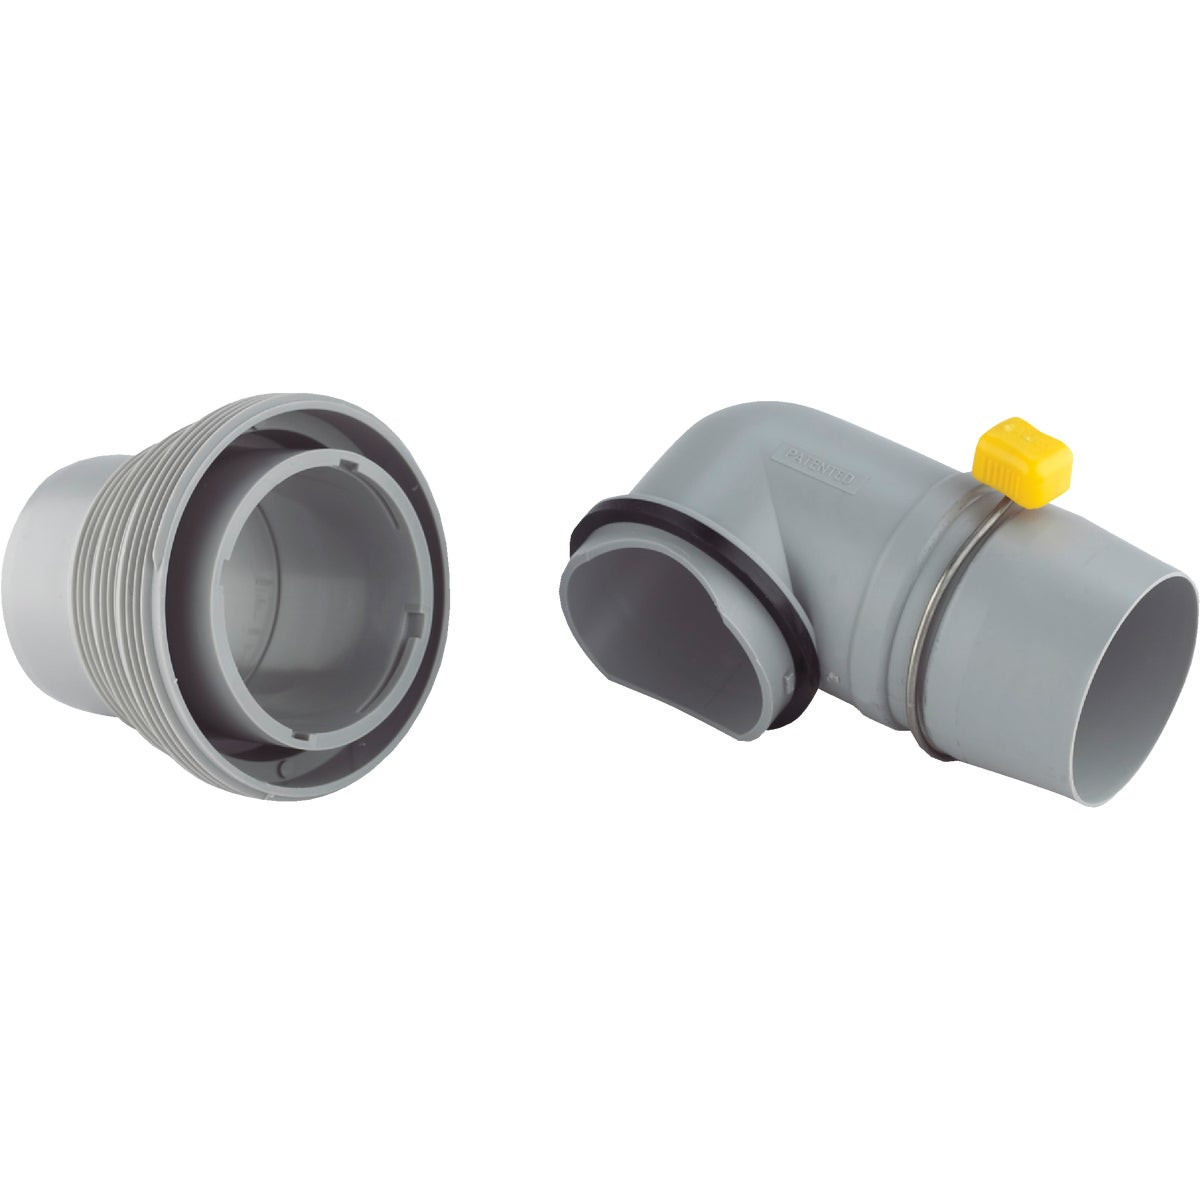 4N1 ELBOW SEWER ADAPTER